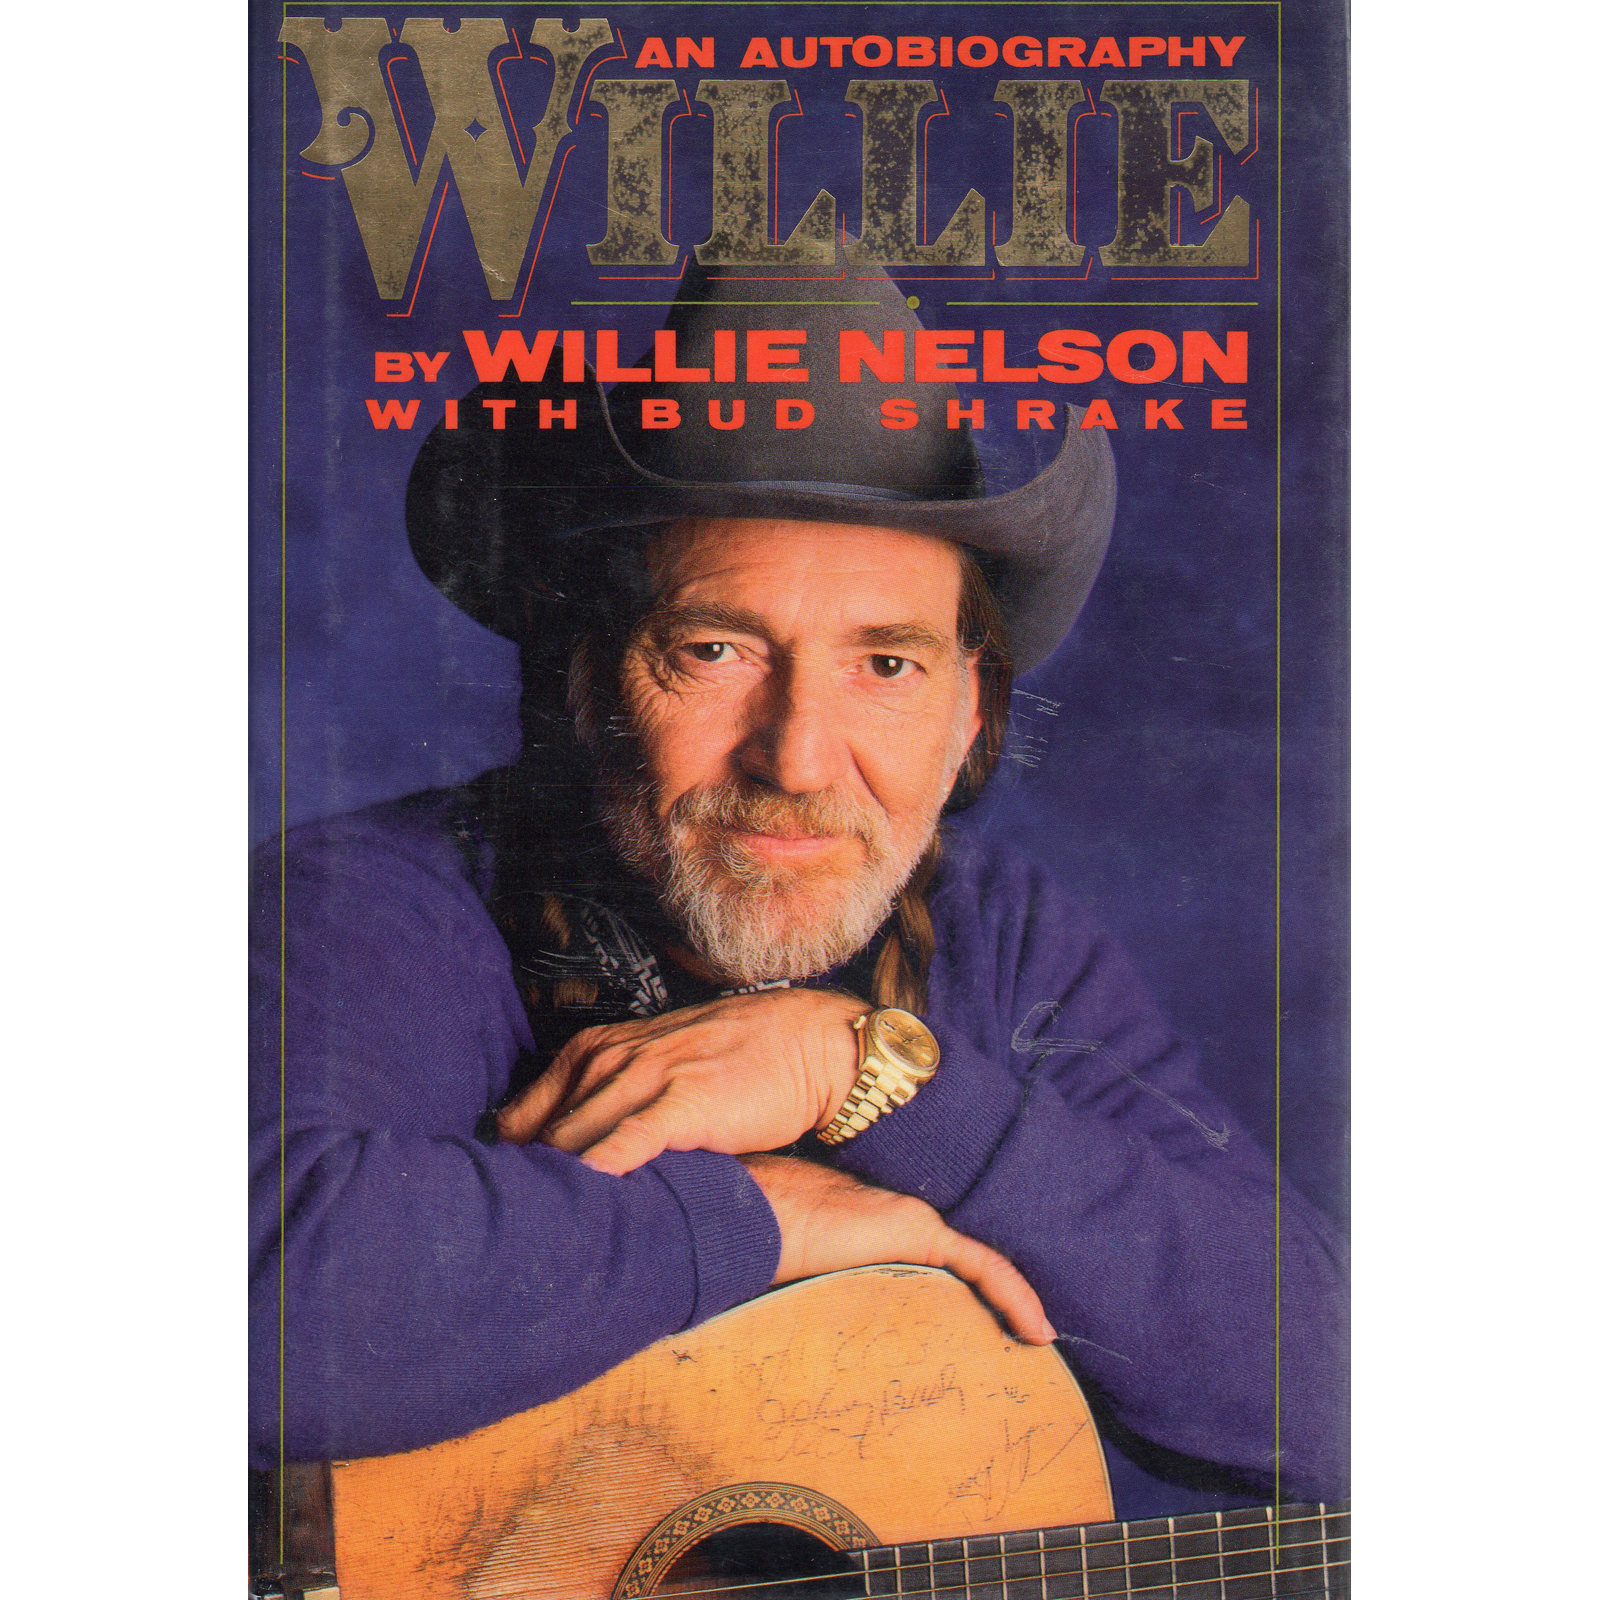 WILLIE NELSON An Autobiography Book